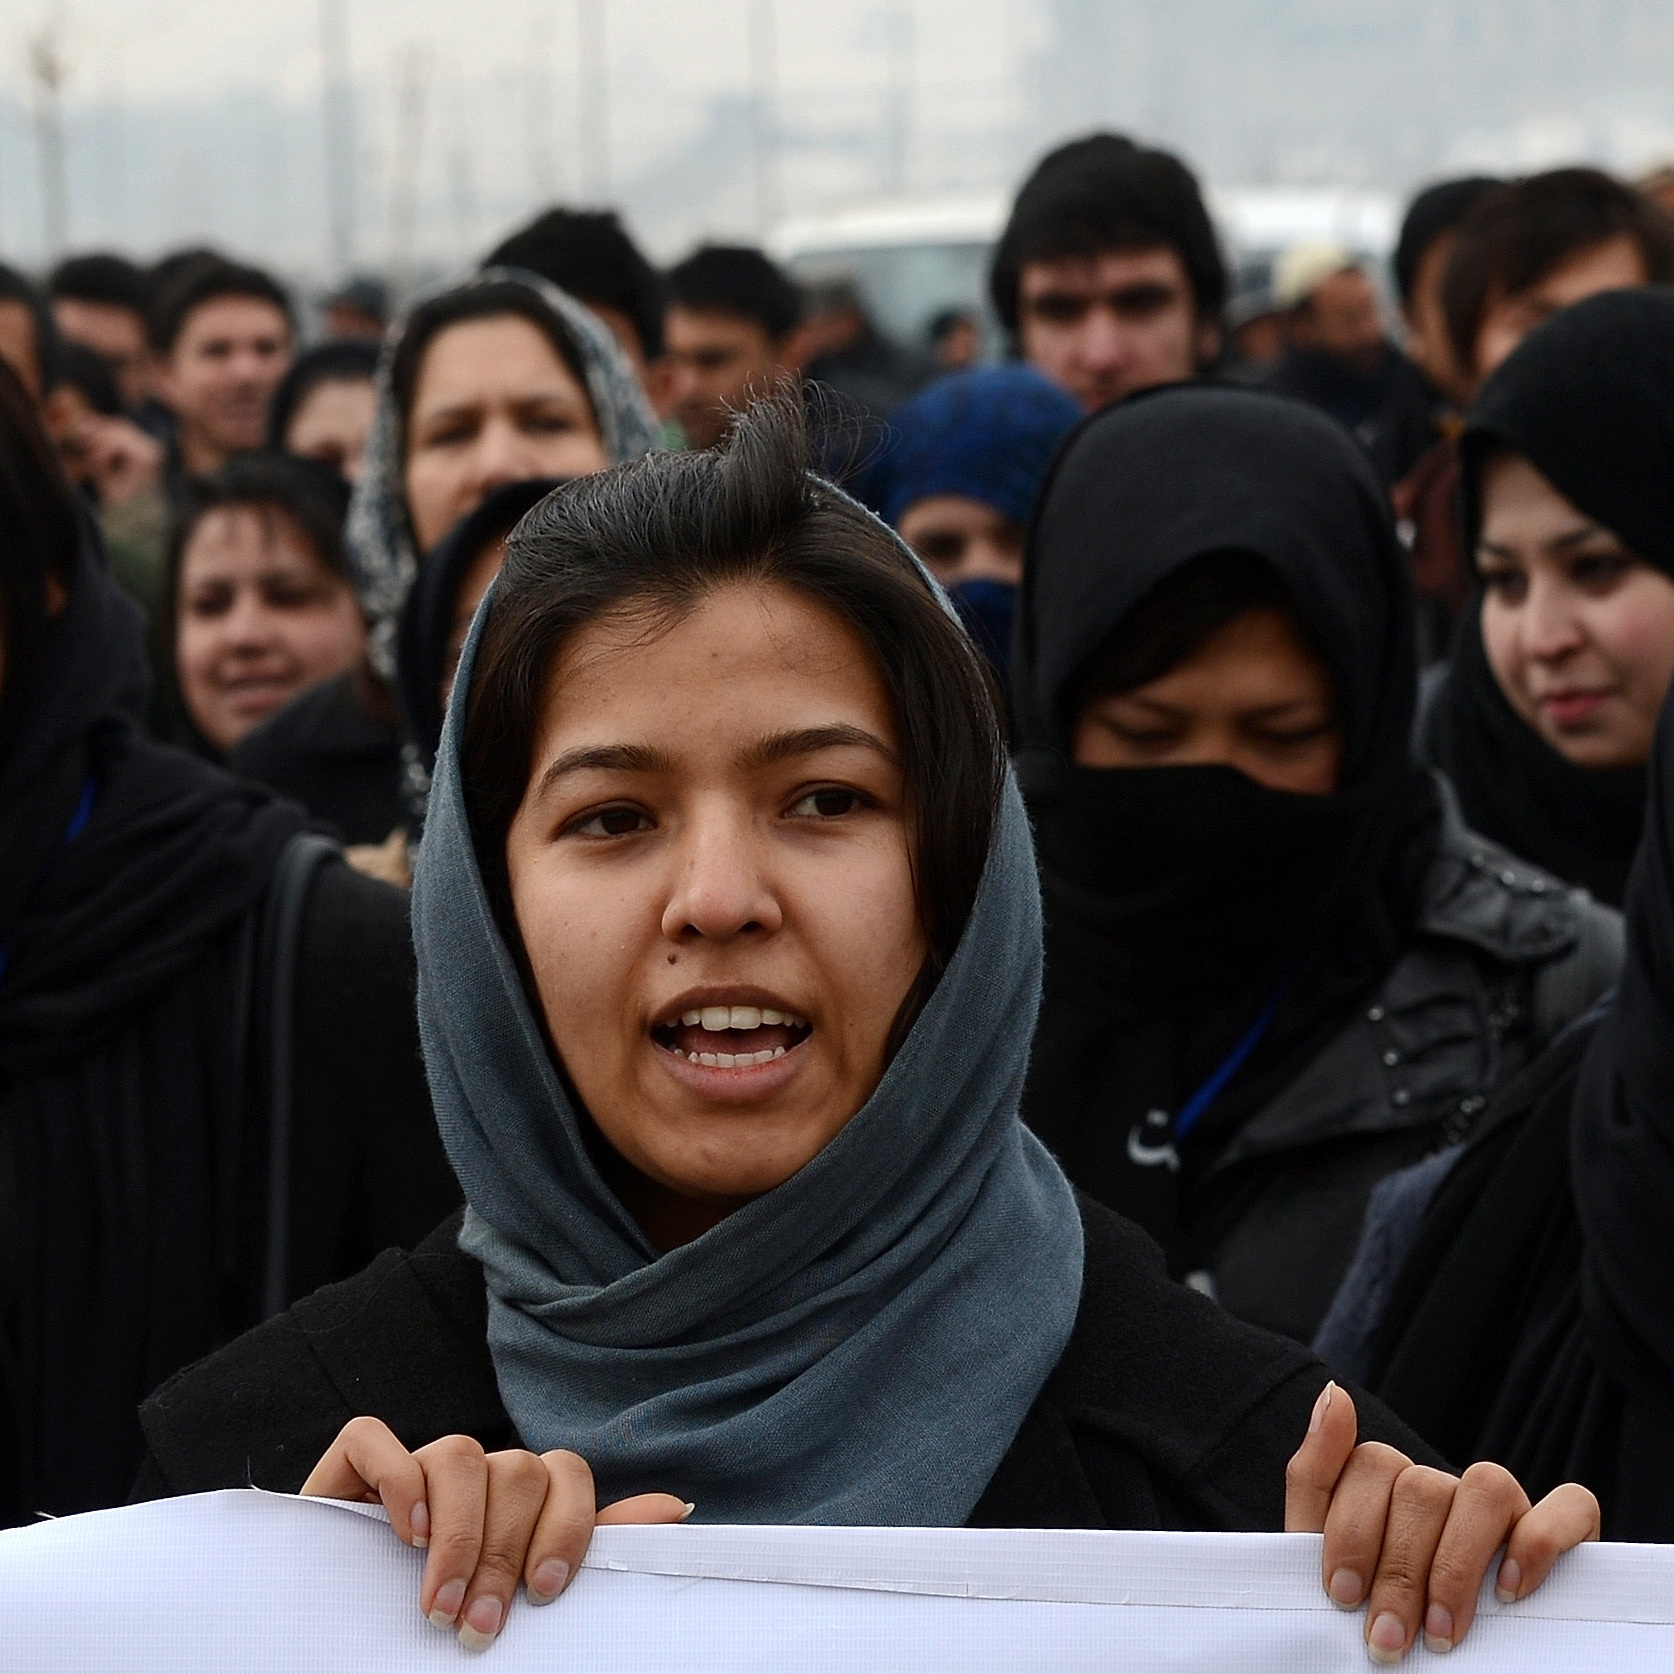 Afghan women march during a protest calling for an end to violence against women in Afghanistan and around the world, in Kabul, on Feb. 14. Since 2009, Afghan parliamentarians have failed to make permanent a presidential decree protecting women's rights.